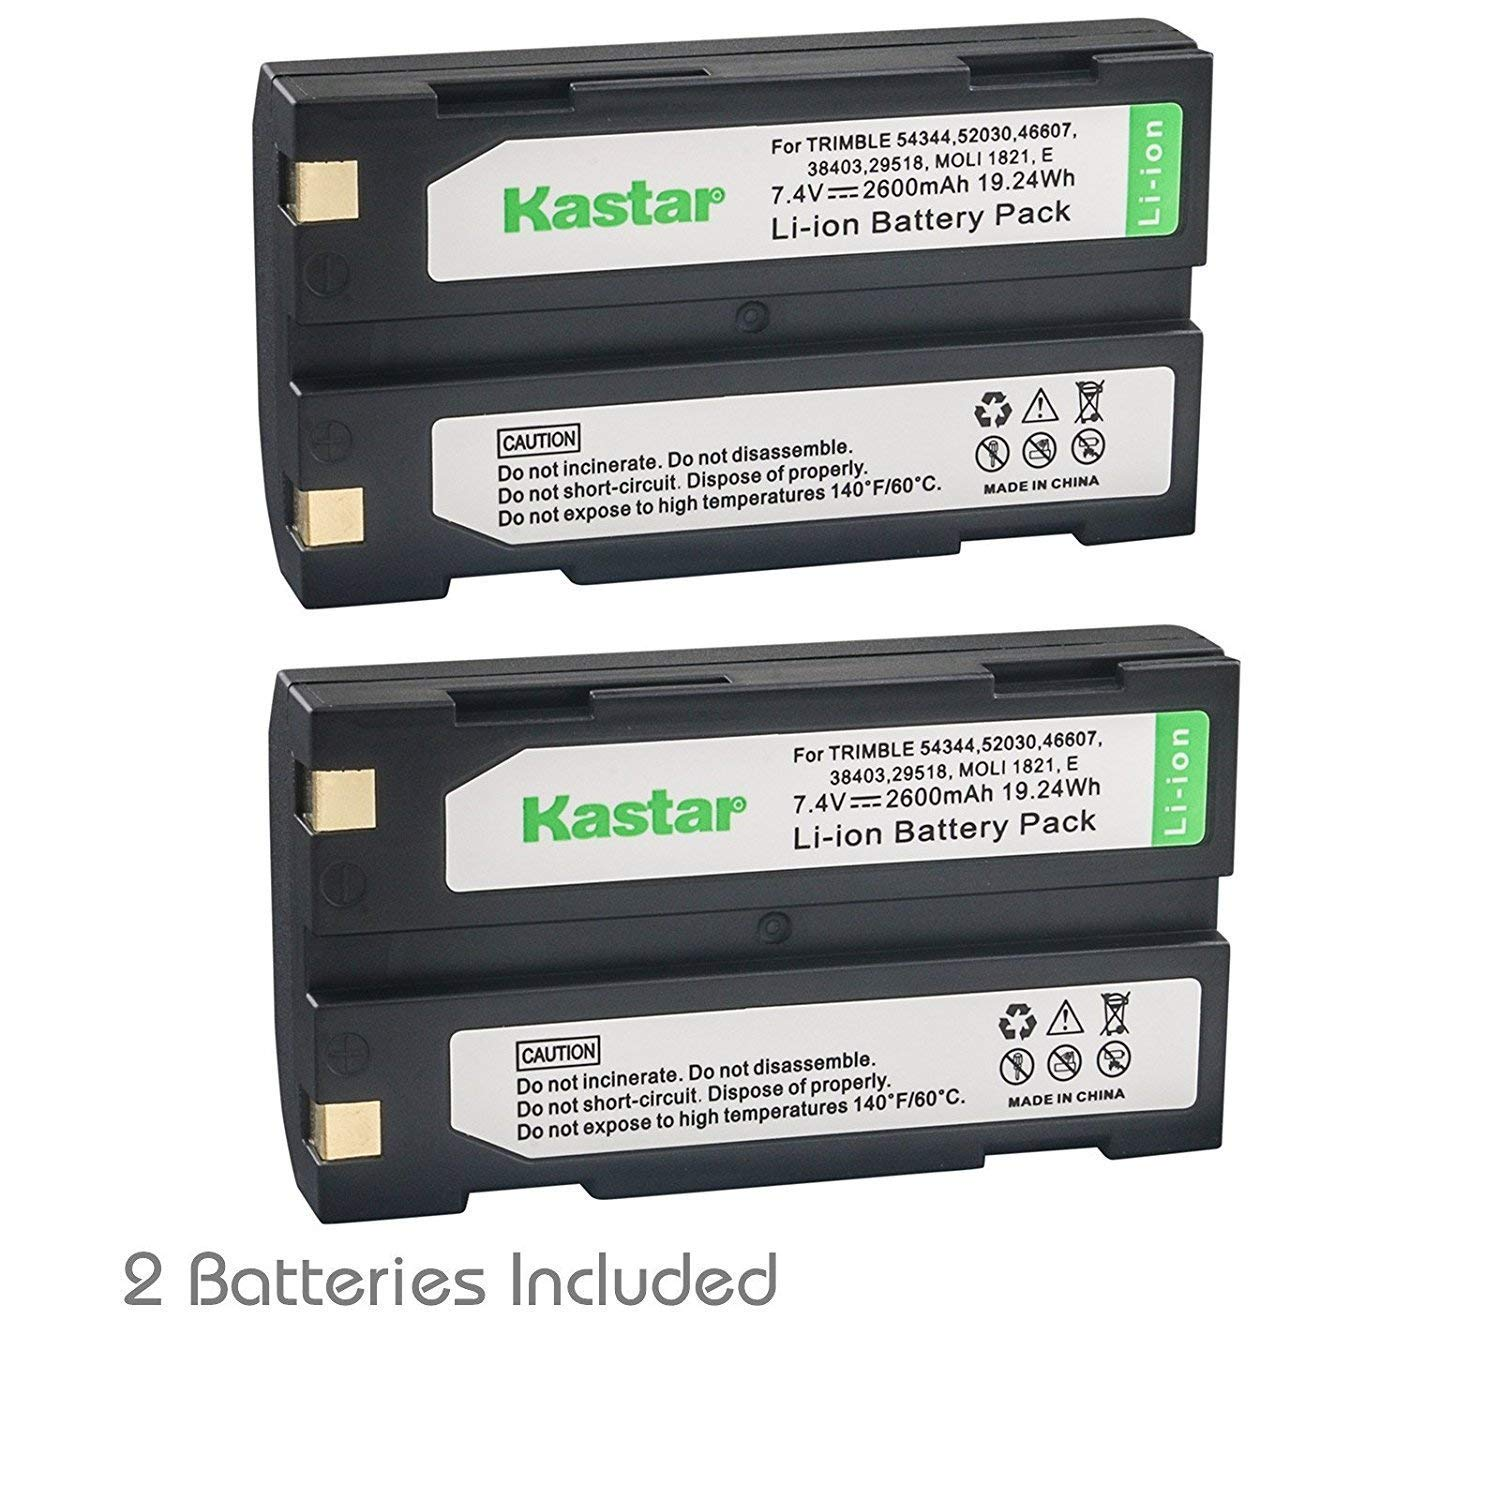 Kastar D-Li1 Battery 2 Pack Replacement for Pentax Ei-D-Li1 EI-D-BC1 EI-2000 Trimble 29518 46607 52030 54344 38403 5700 5800 R6 R7 R8 GNSS TR-R8 GPS MT1000 HP C8873A PhotoSmart 912 C912 912XI C912XI by Kastar (Image #1)